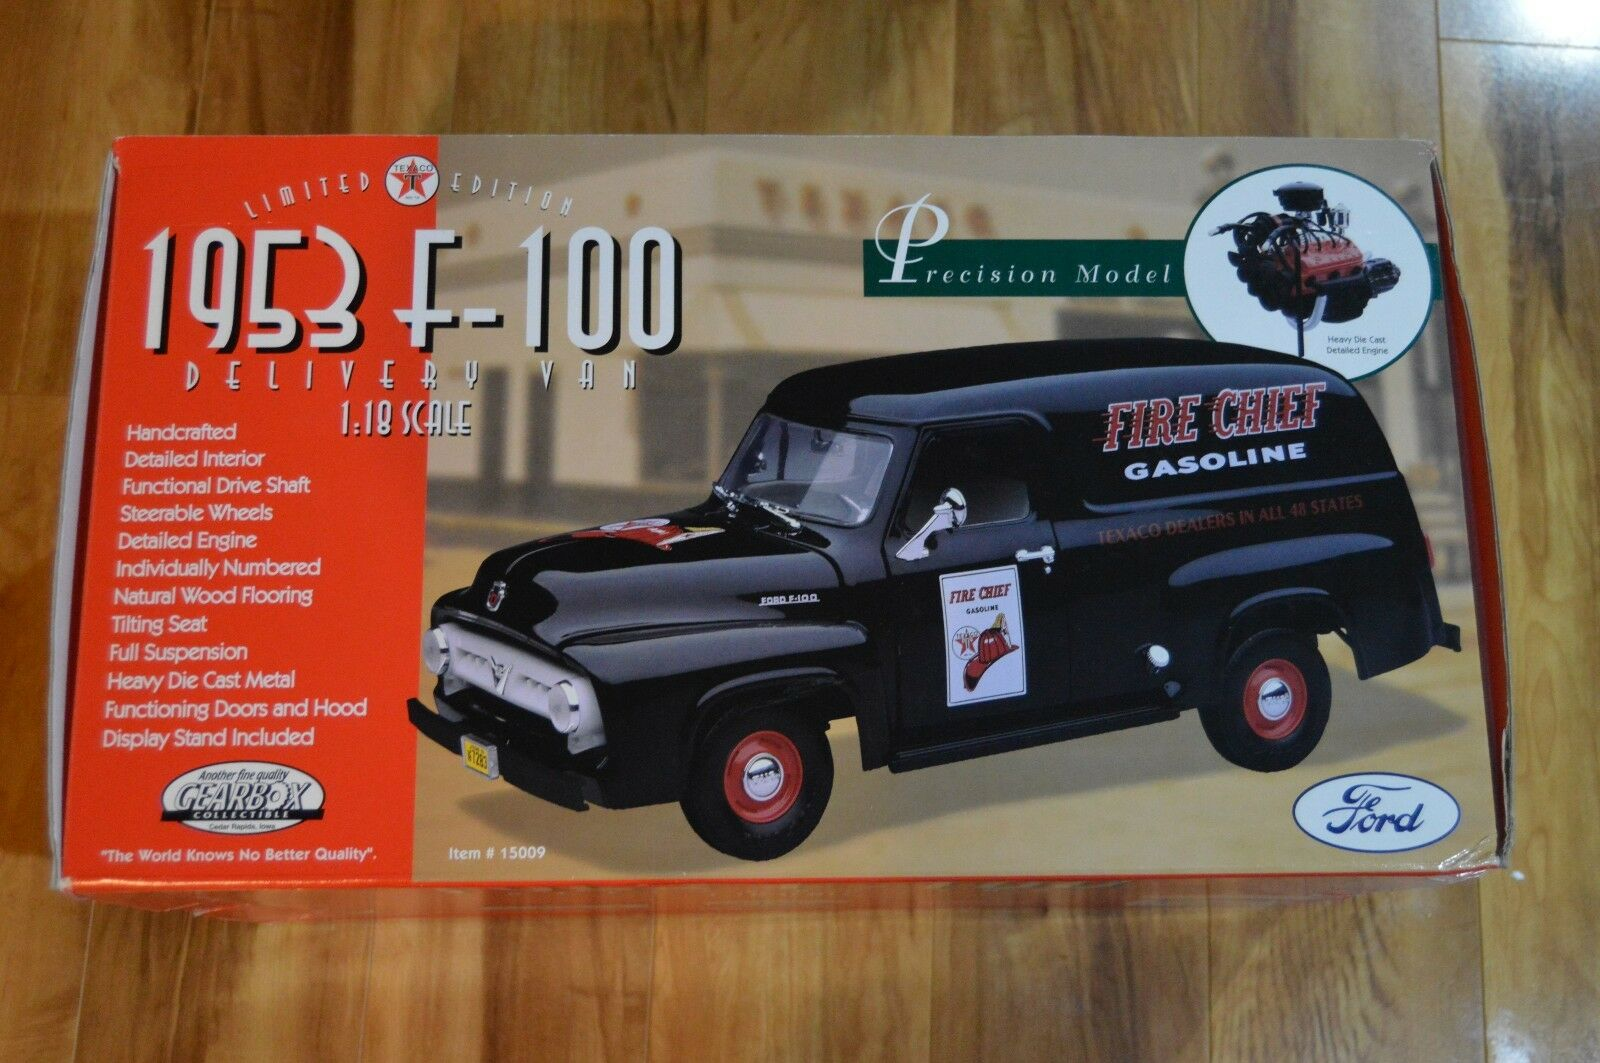 Gearbox Limited Edition 1953 Ford F-100 Delivery Van Texaco in 1 18 scale